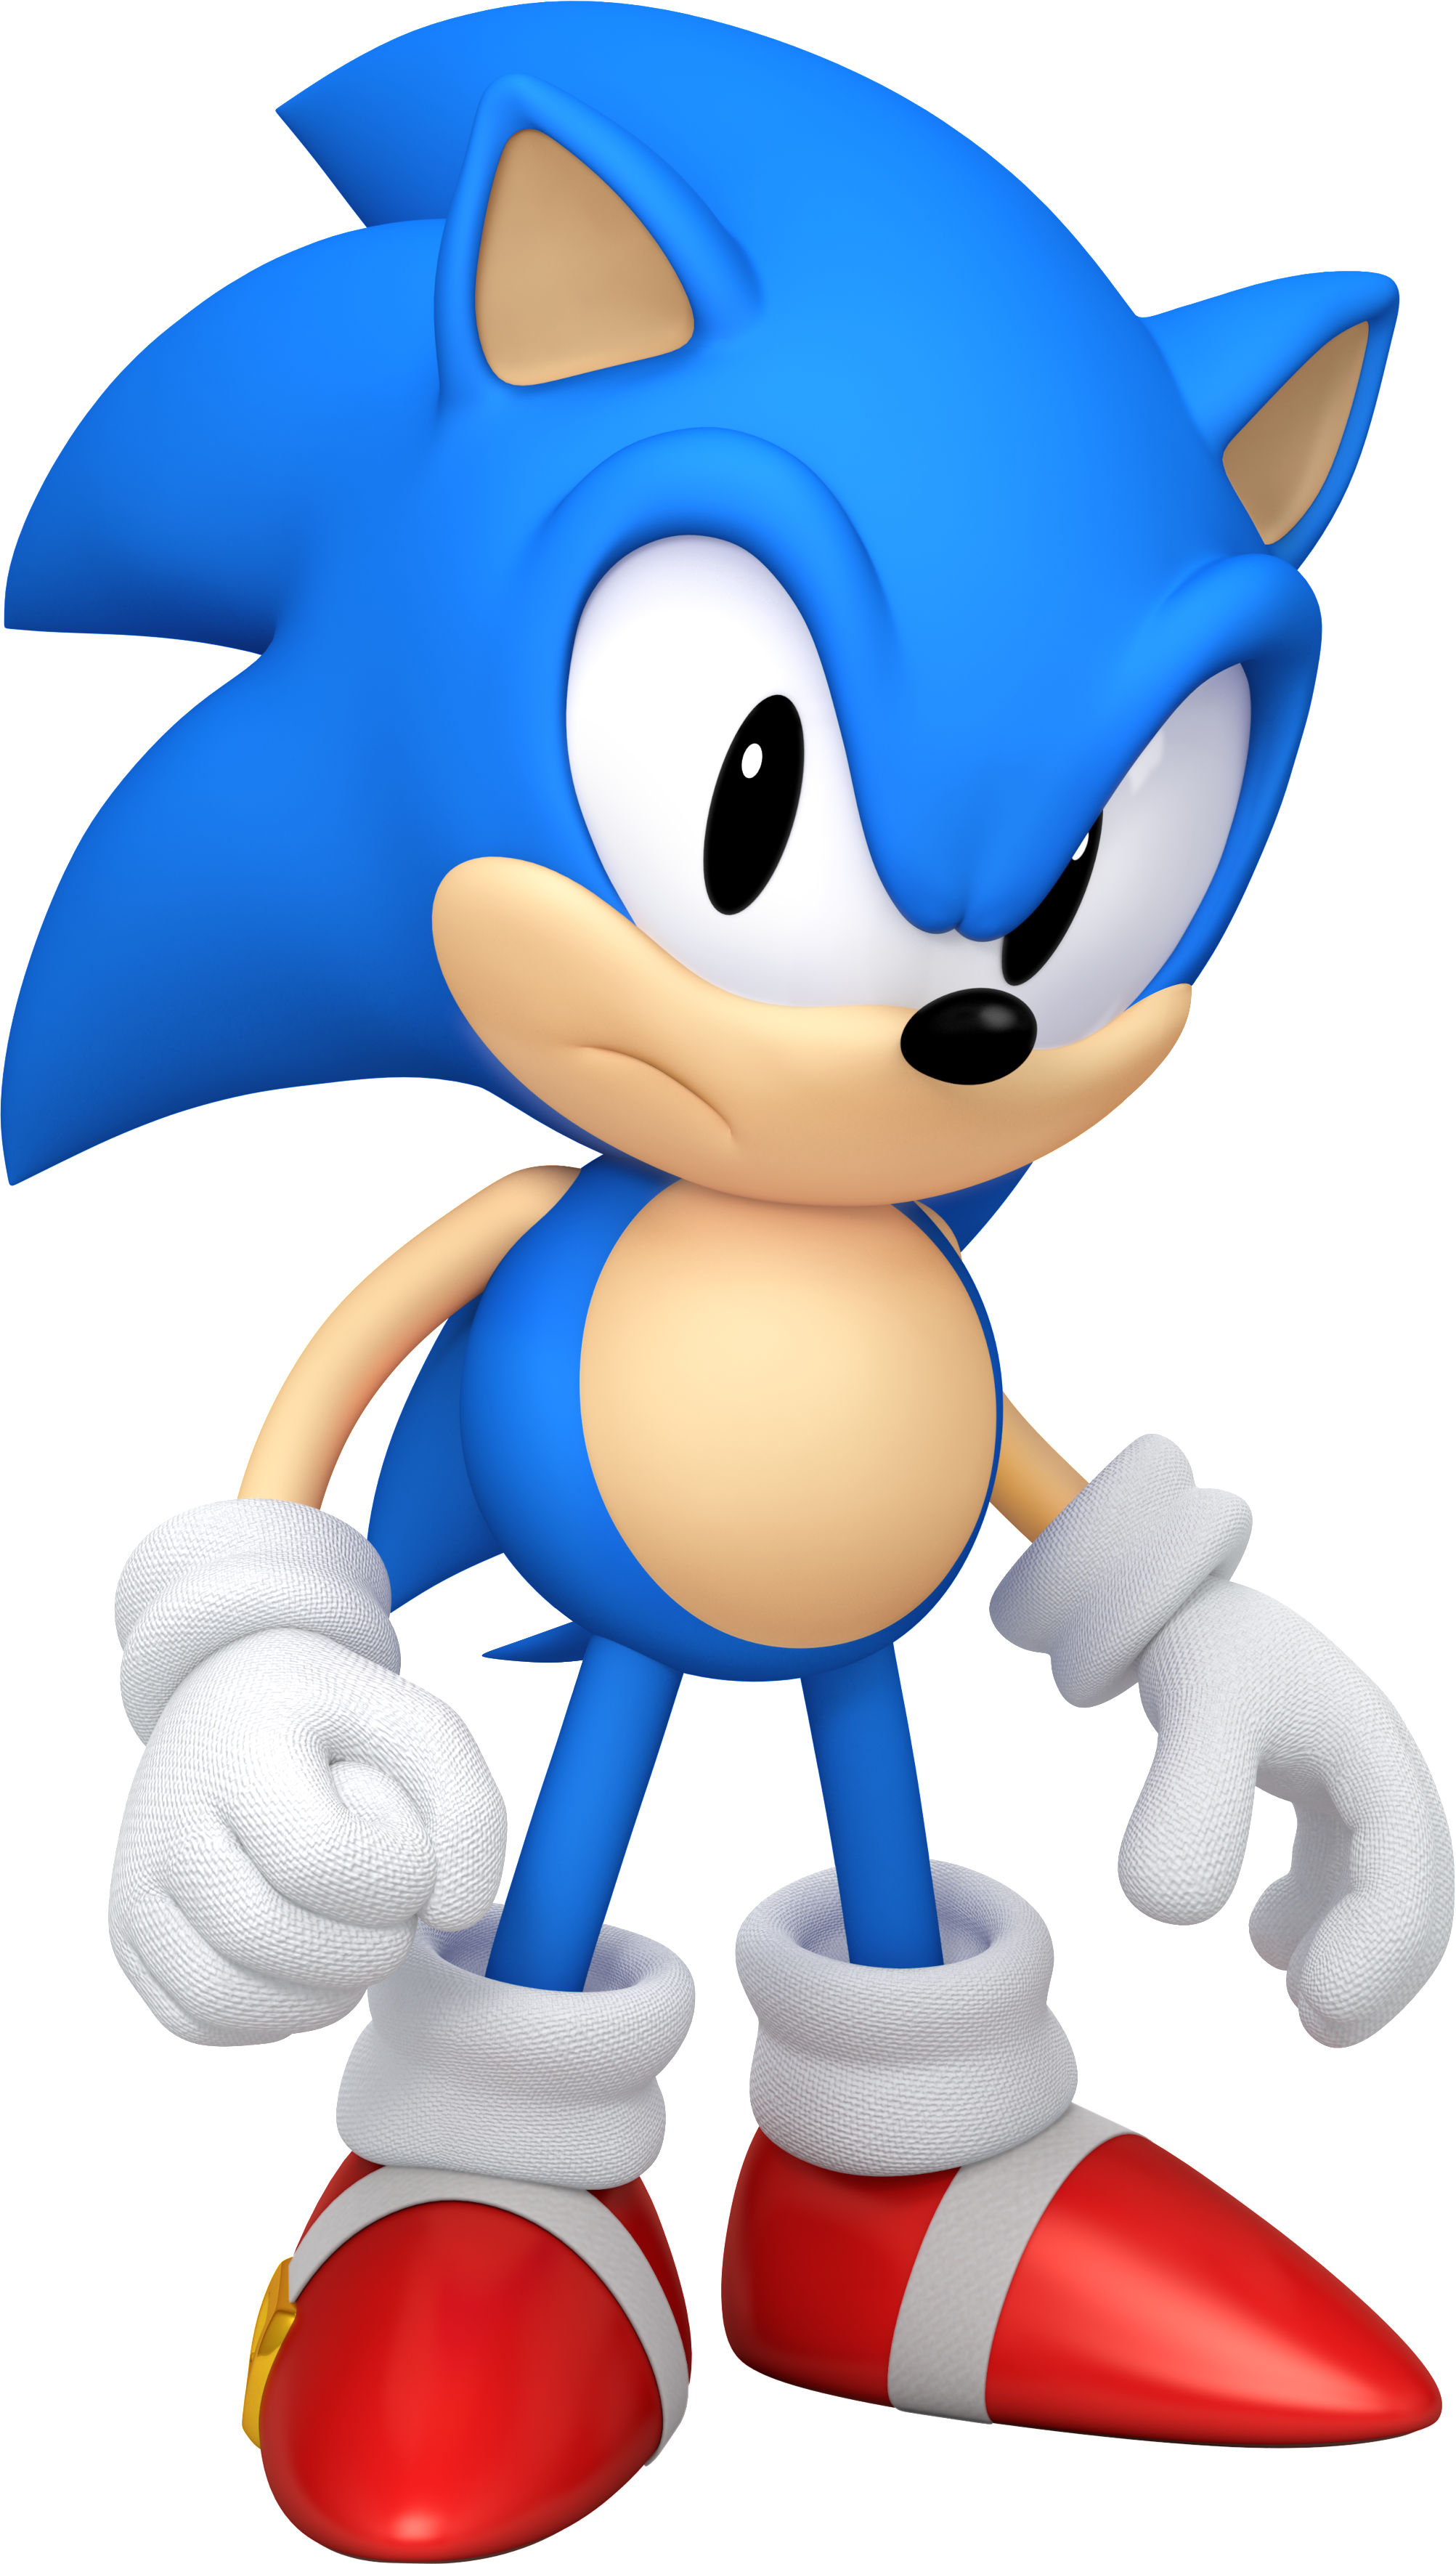 Sonic The Hedgehog Classic Sonic S World Sonic News Network Fandom